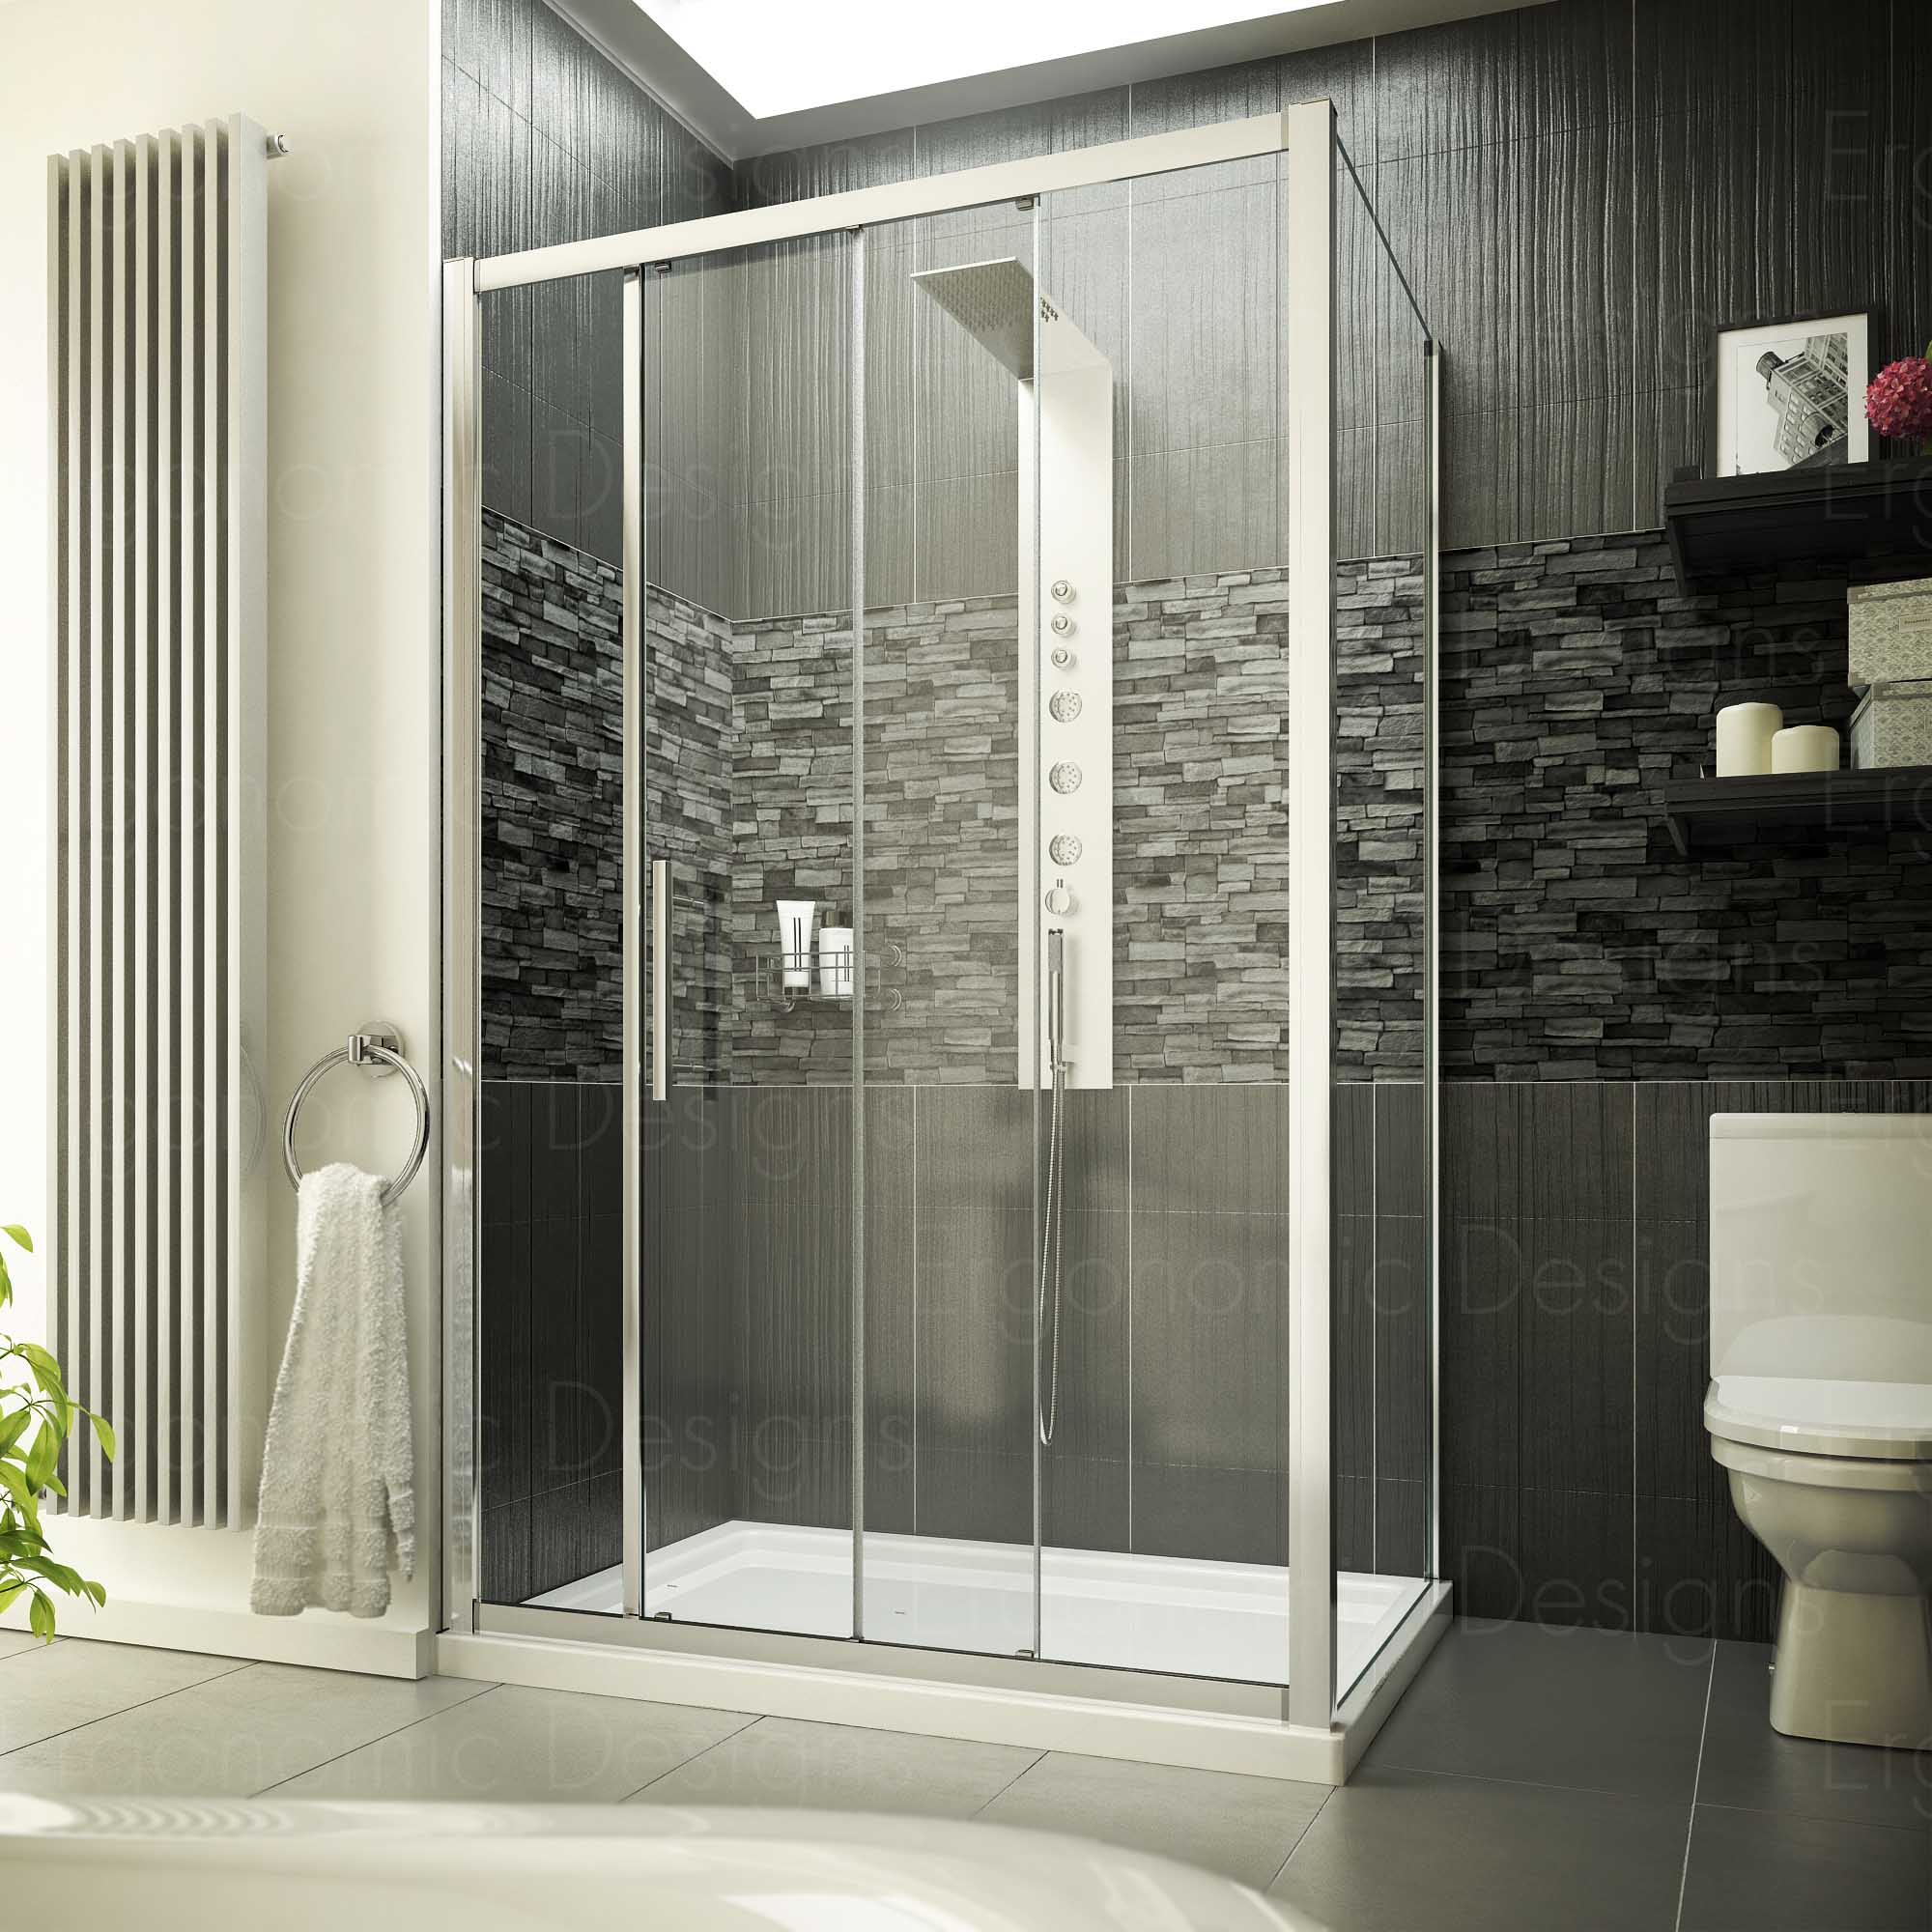 1200 X 700 Sliding Door Shower Enclosure 8mm Easy Clean Glass And